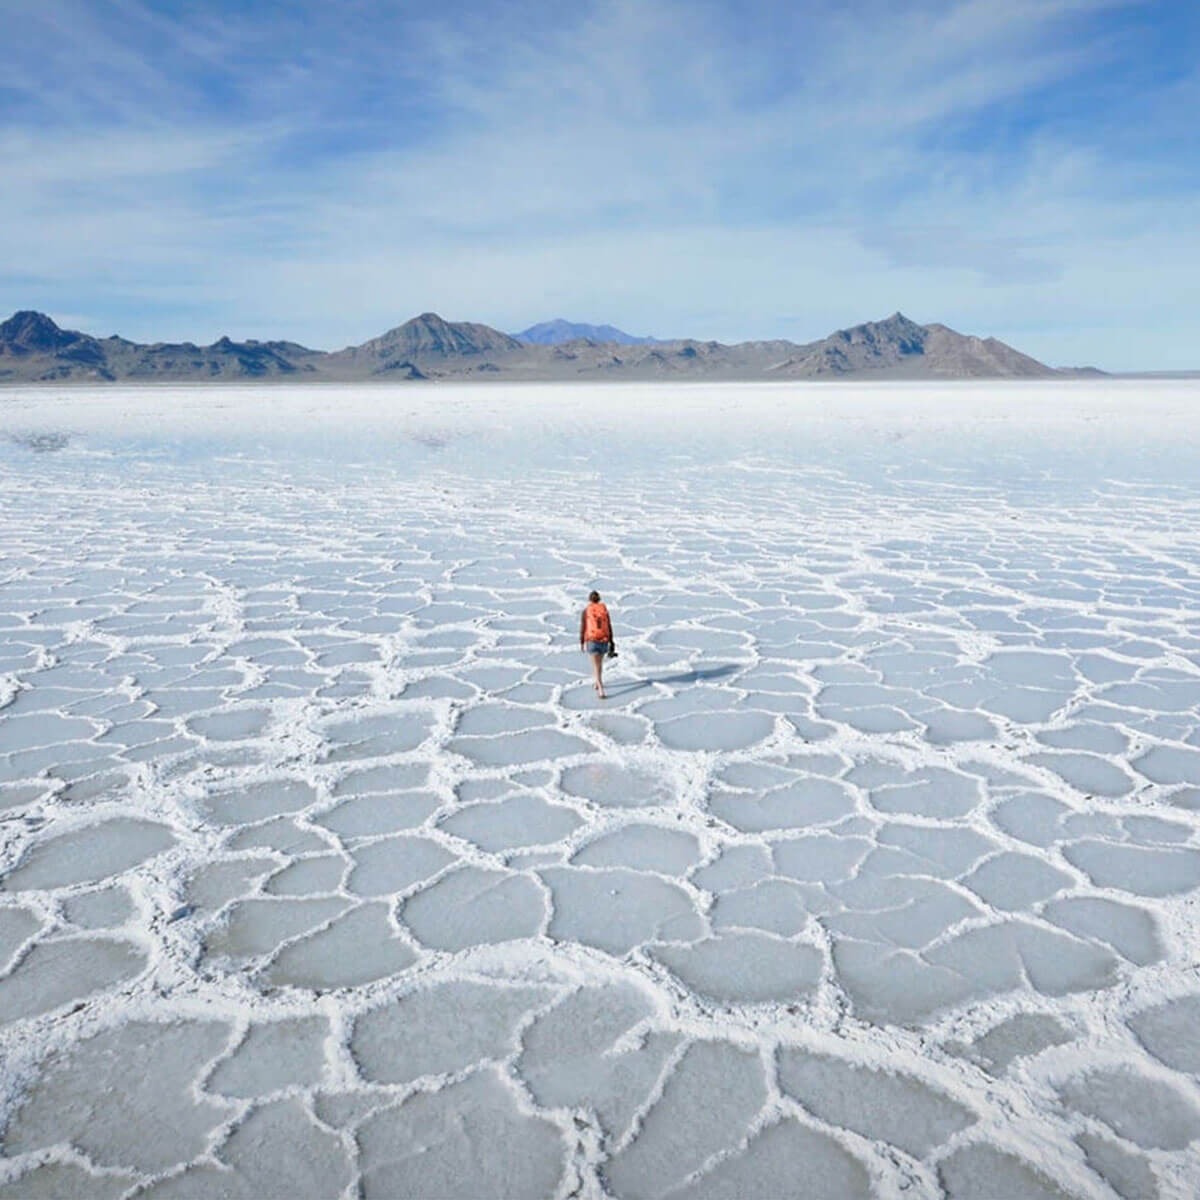 Landscape image of salt lake